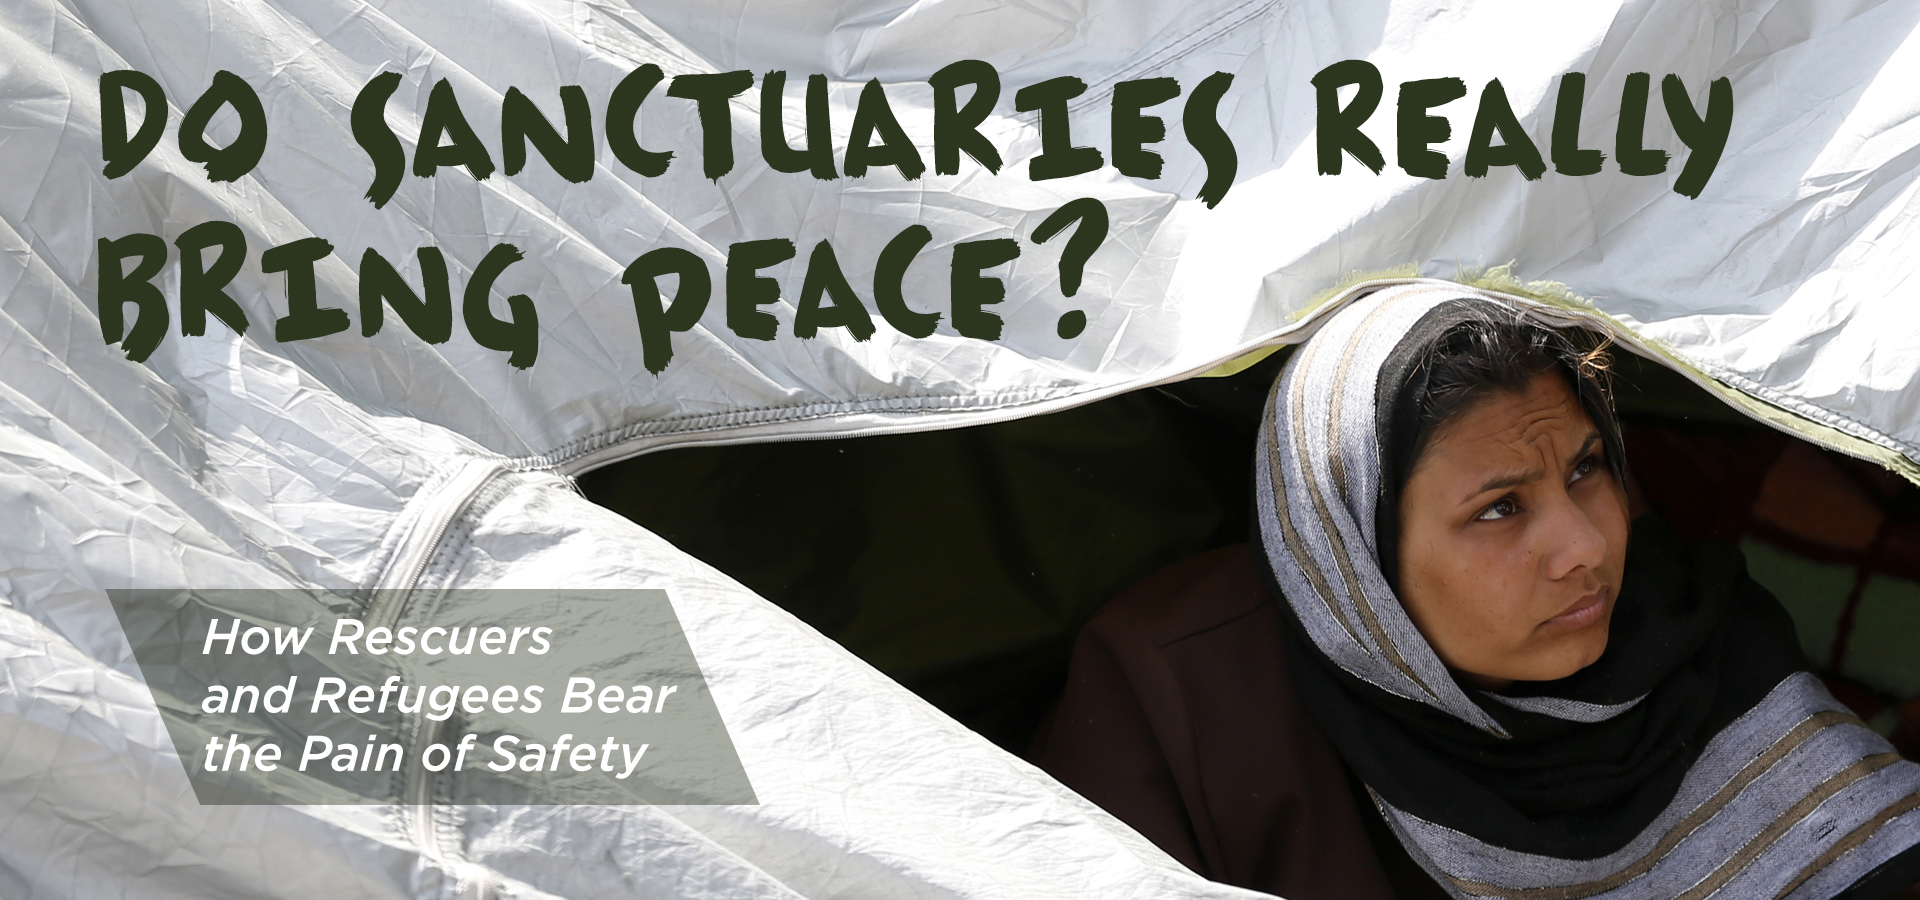 Do Sanctuaries Really Bring Peace?